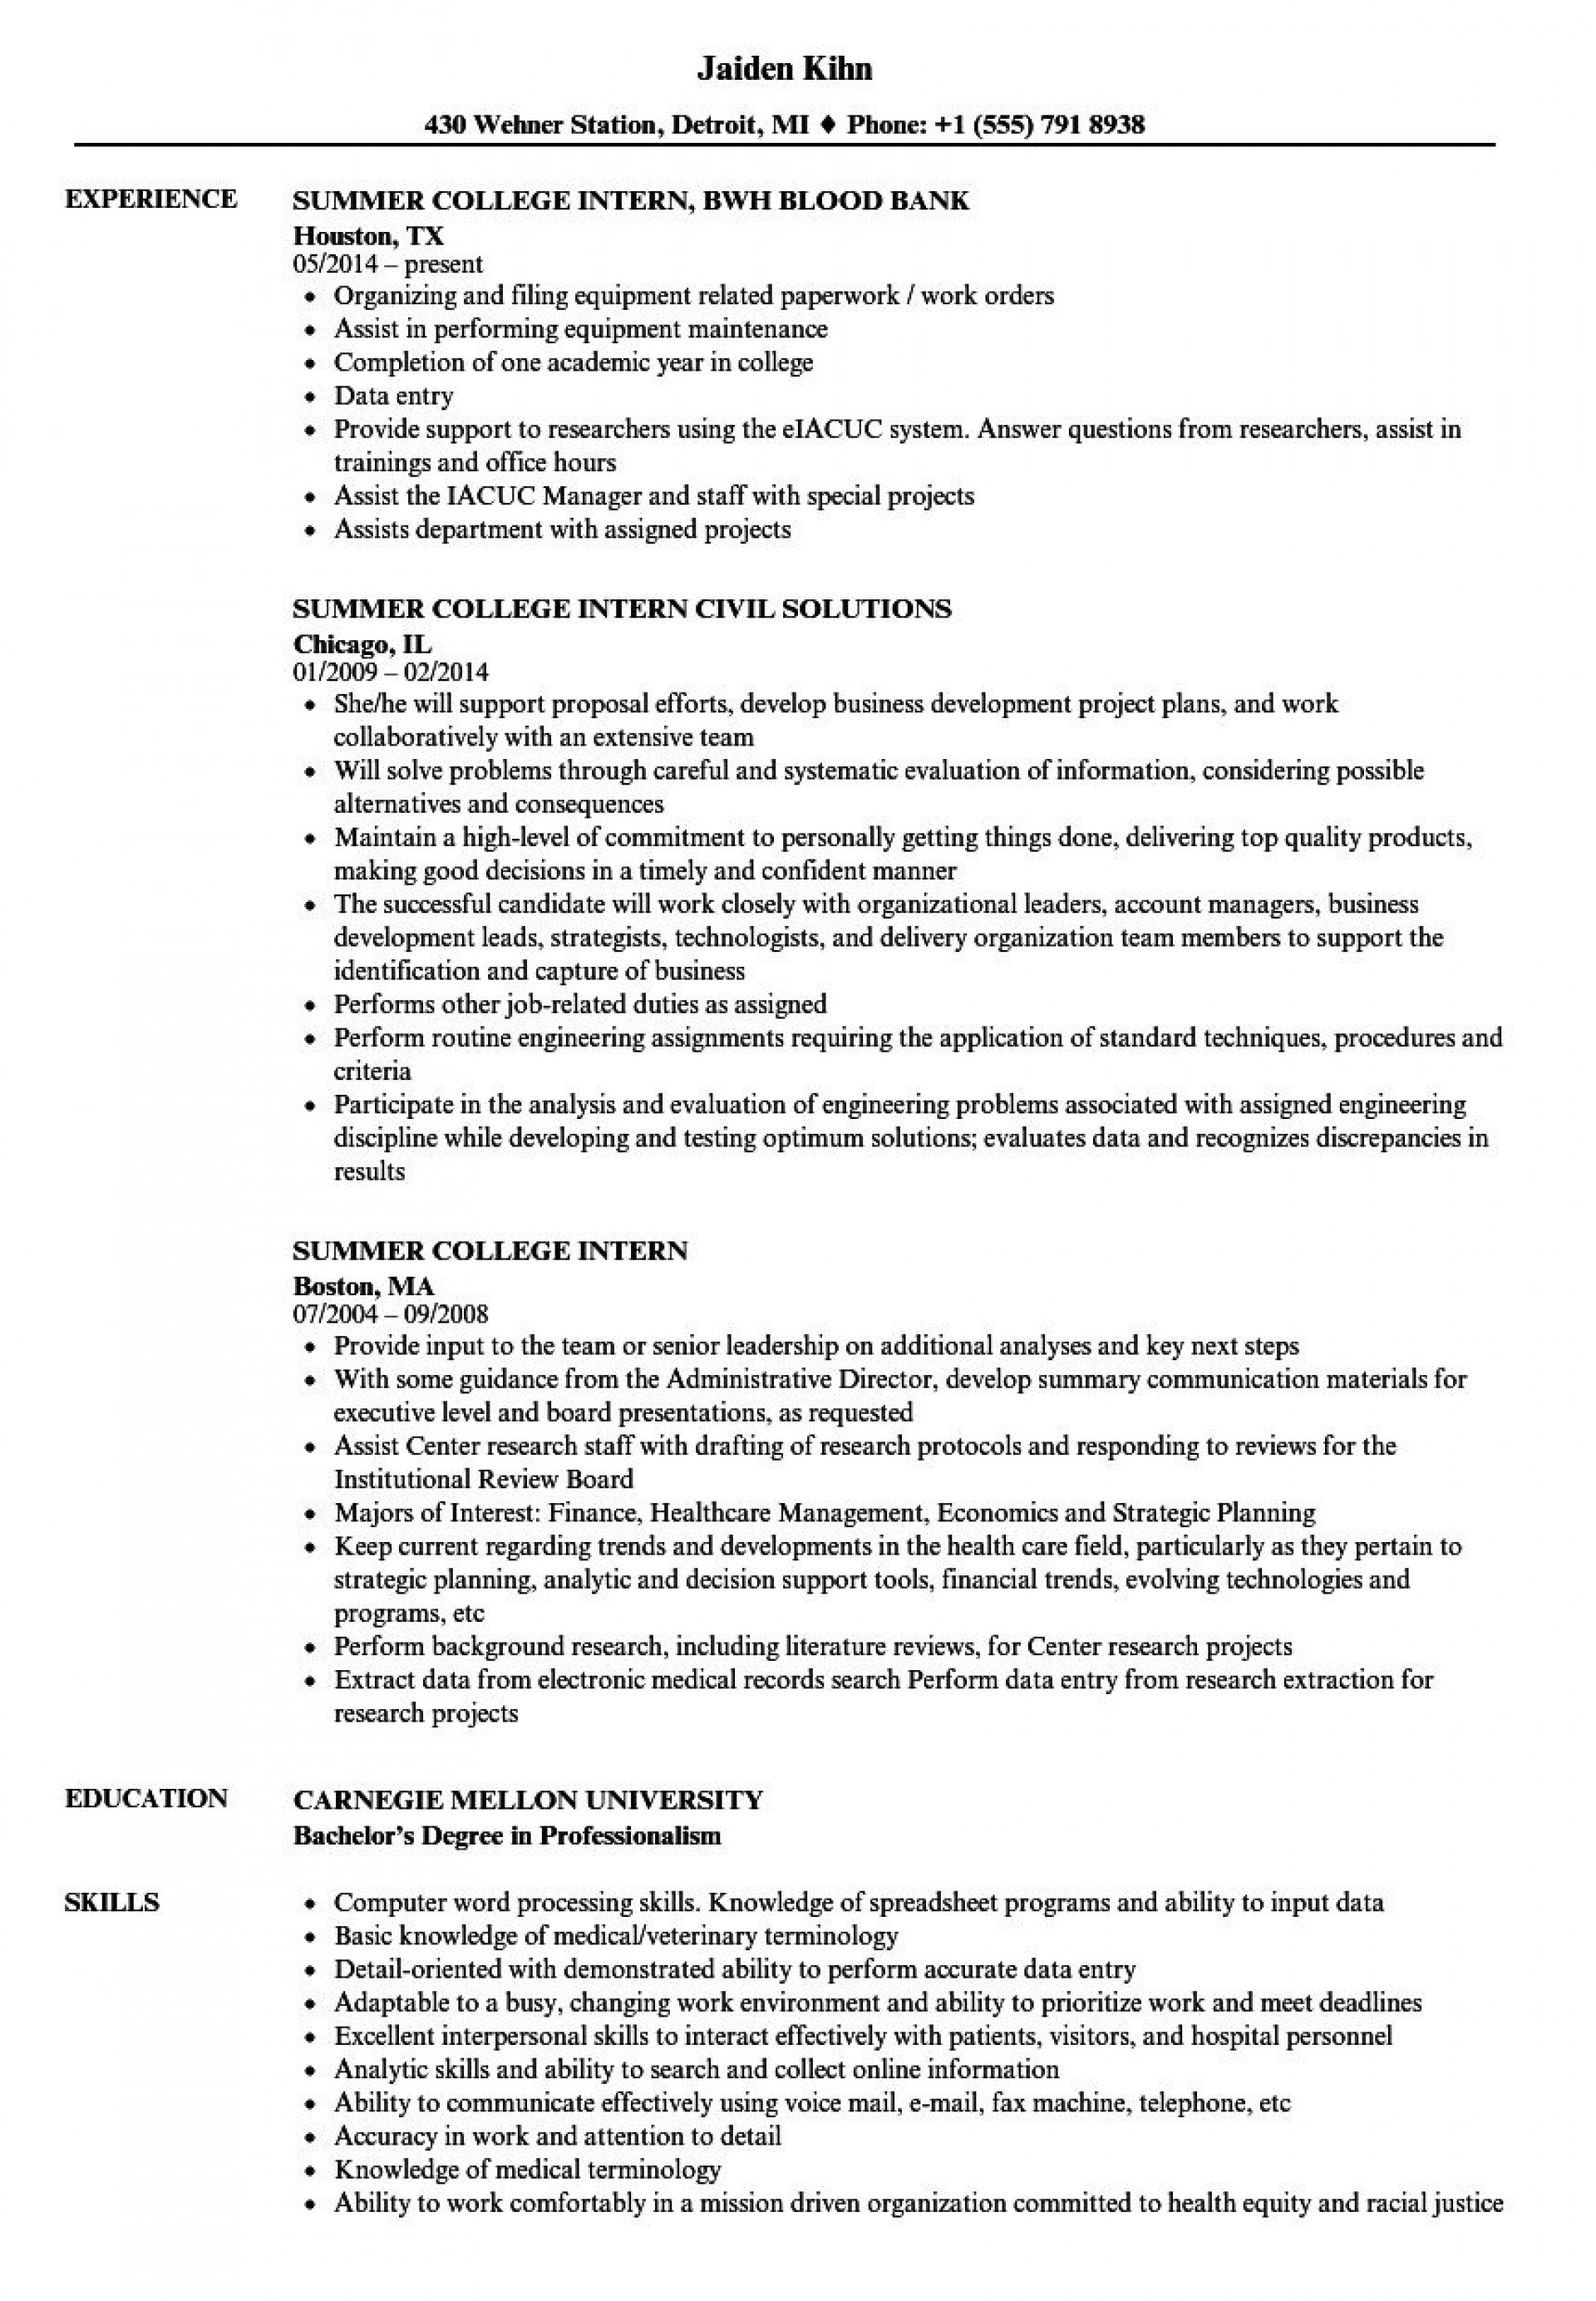 009 Amazing College Internship Resume Template Inspiration  Student Job For Download1920